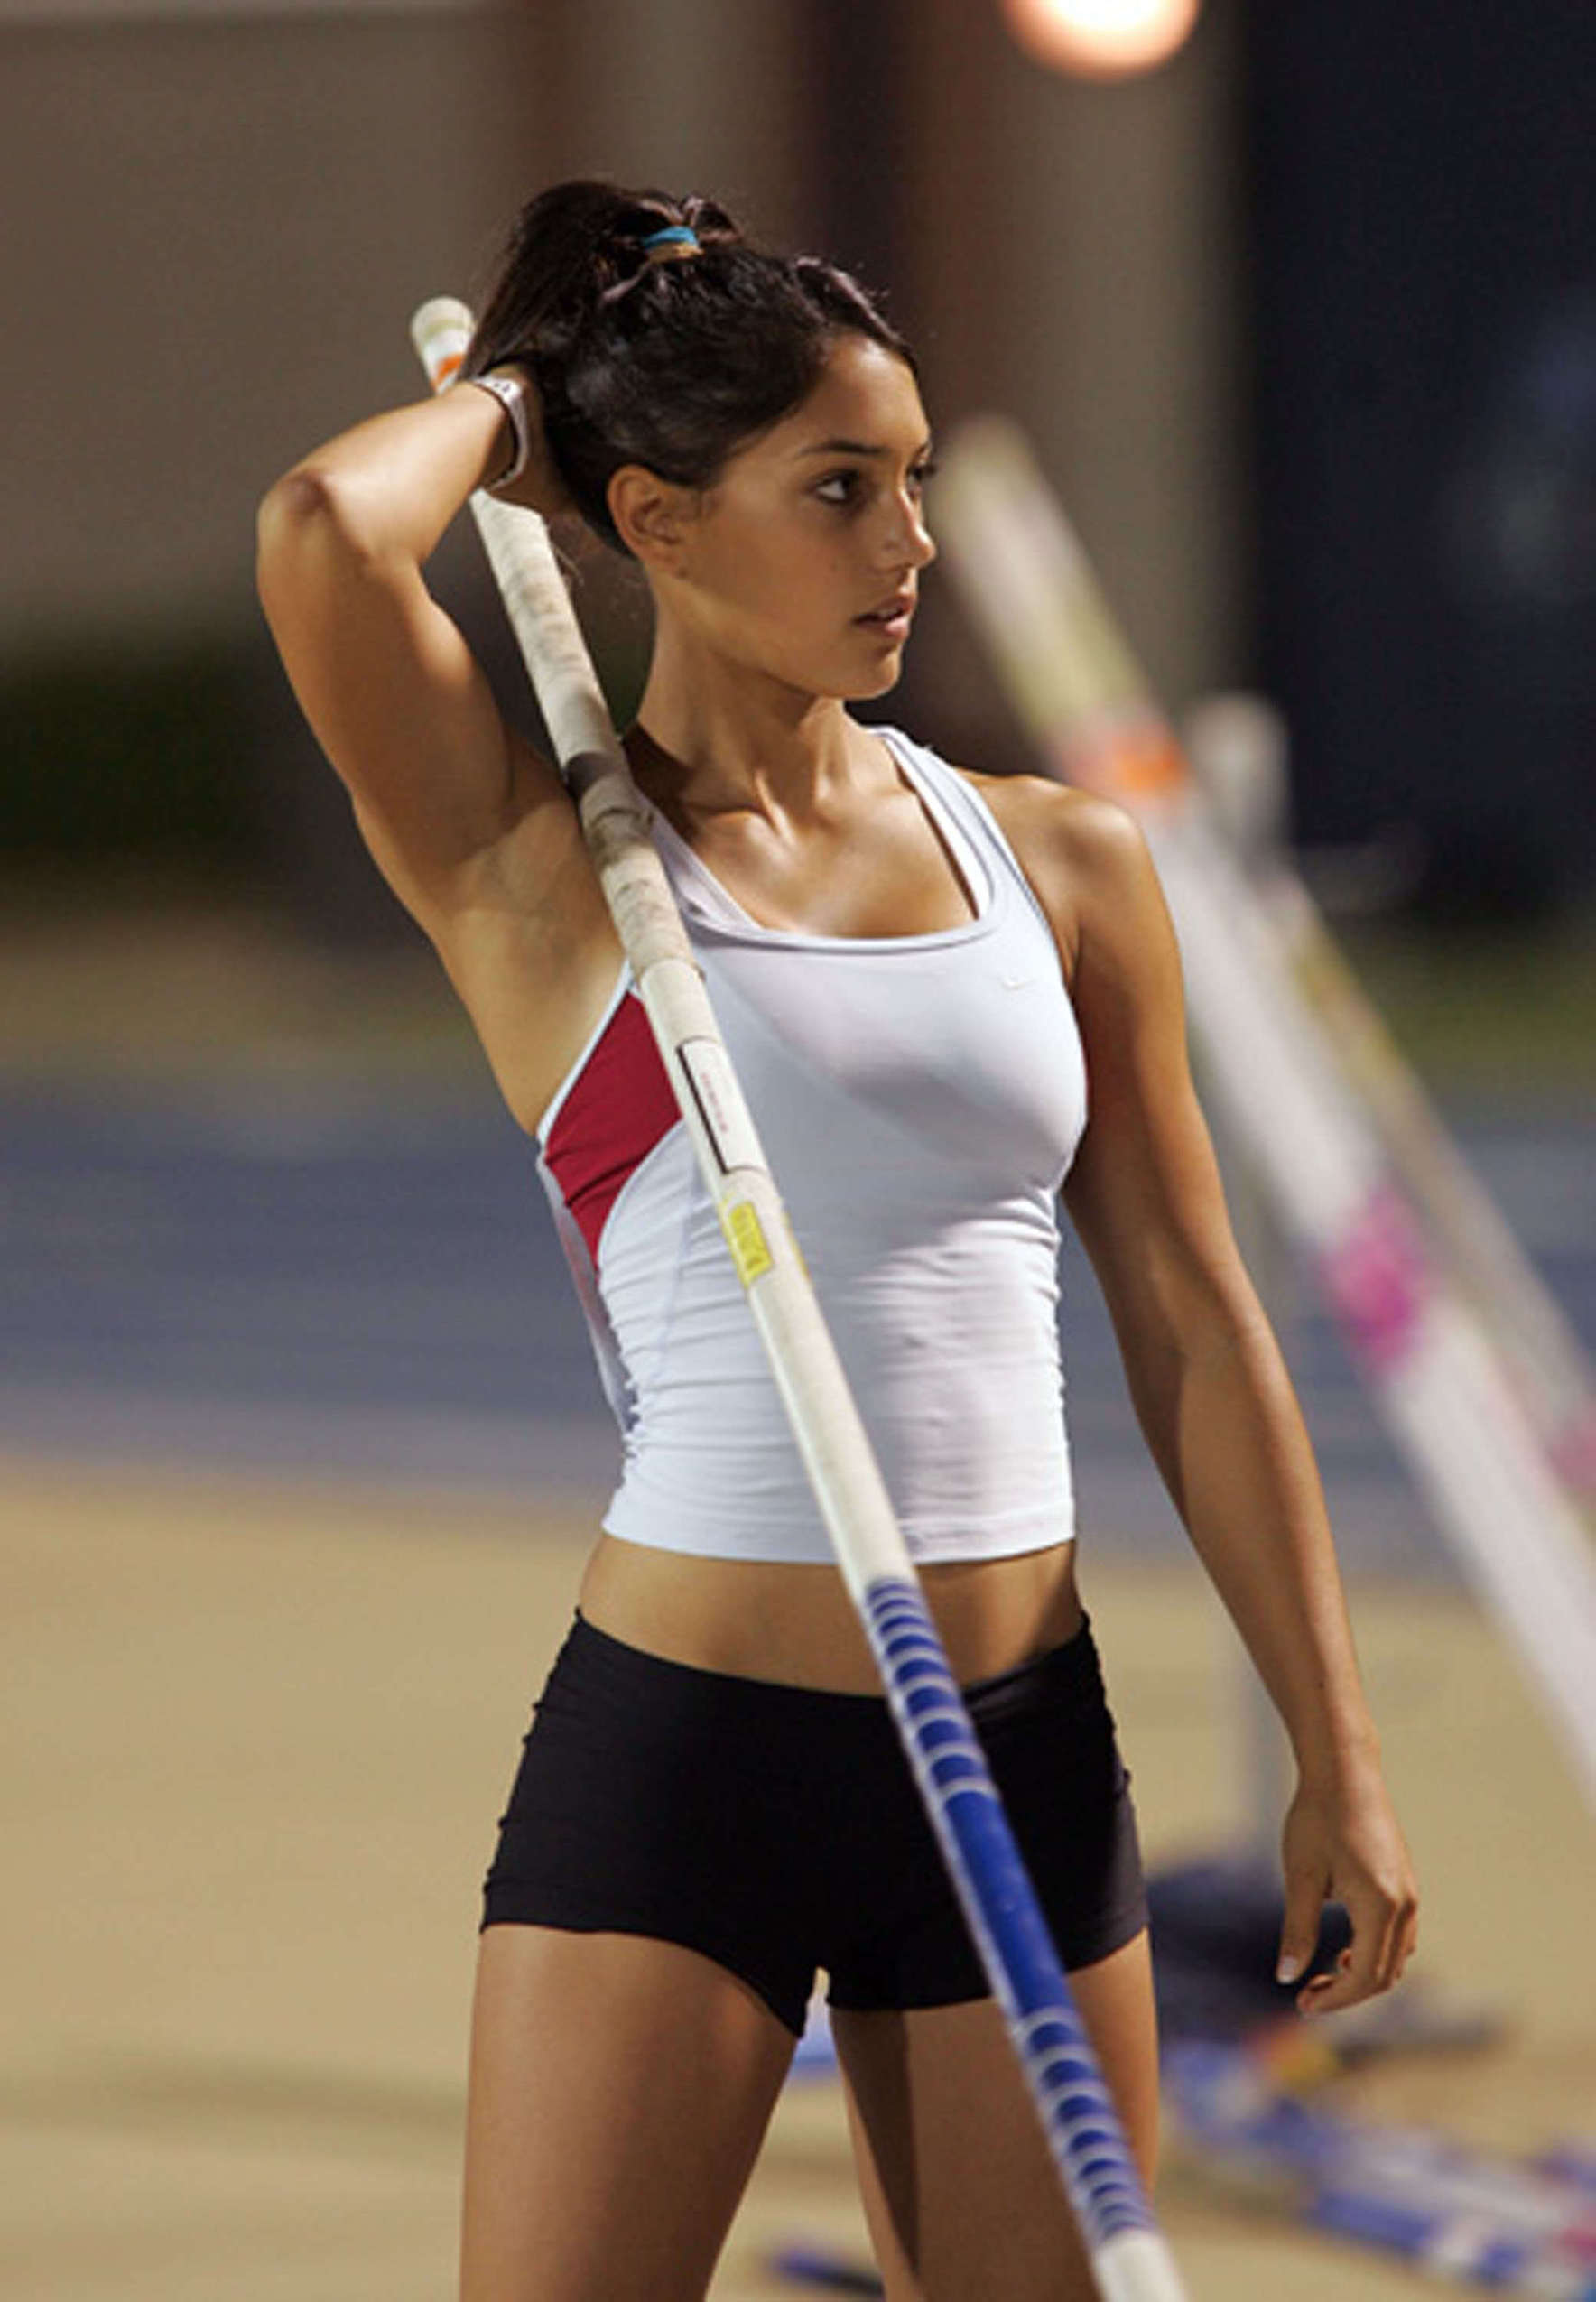 The Absolute Hottest Athletic Bodies | Women